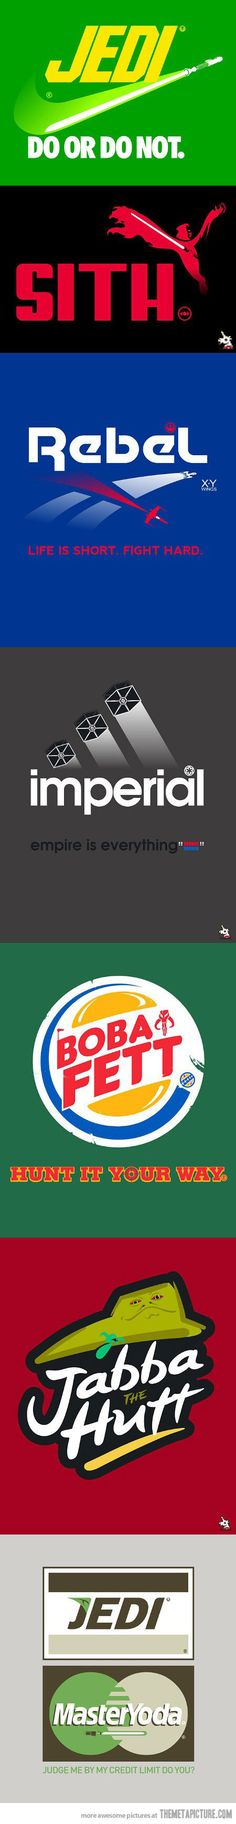 If brands were in the Star Wars universe